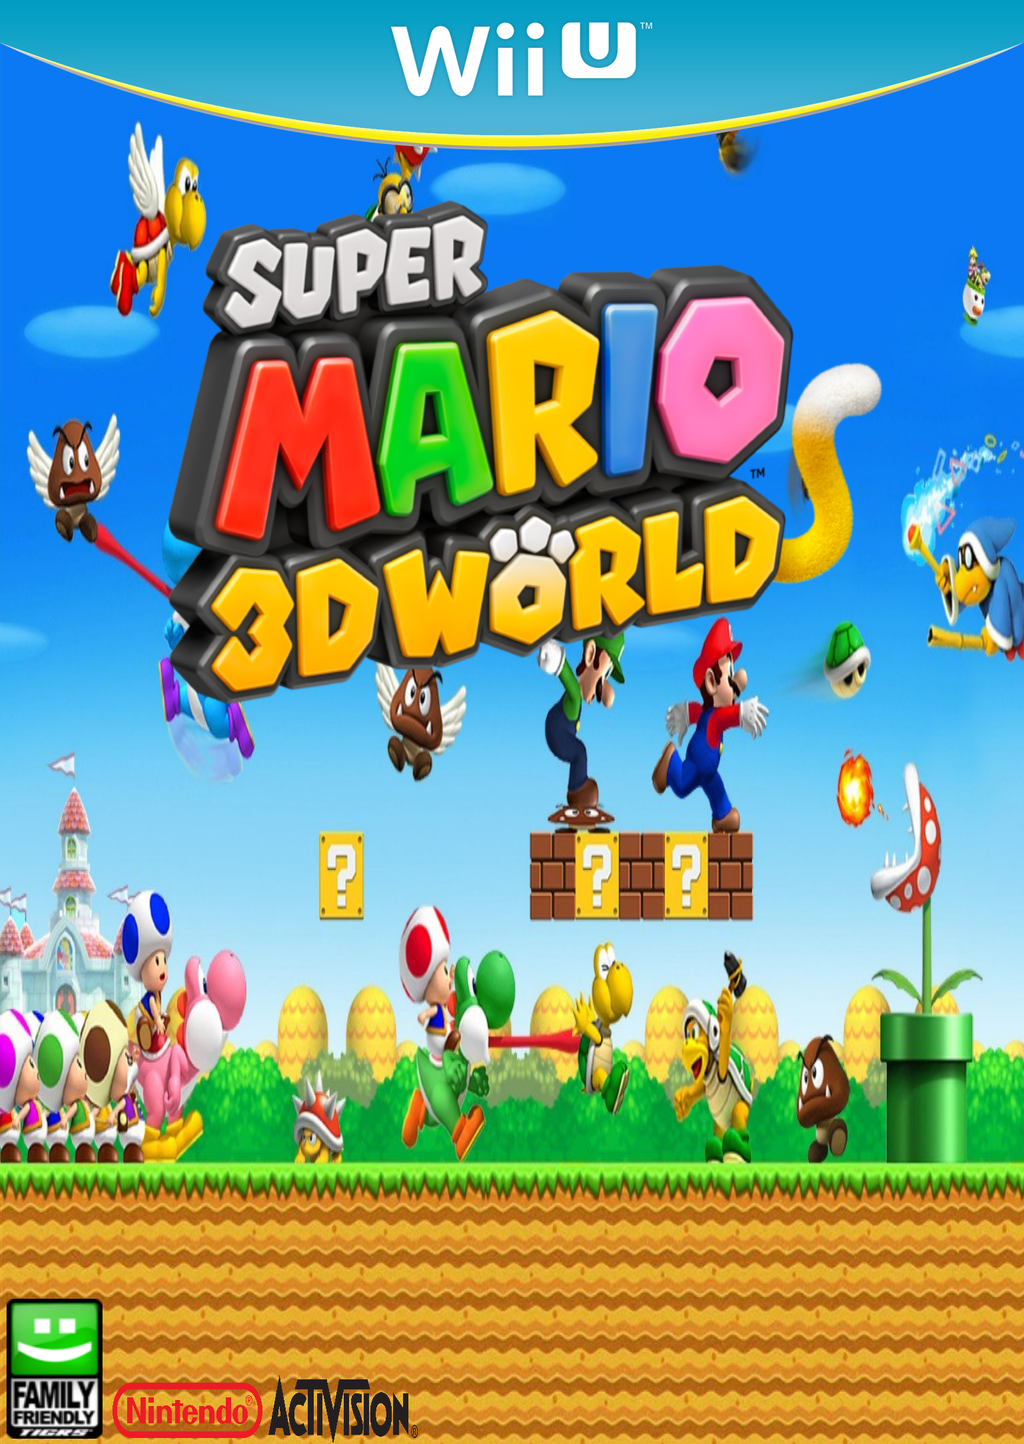 Mario Wii U Games : Super mario d world wii u game cover concept by imavalible